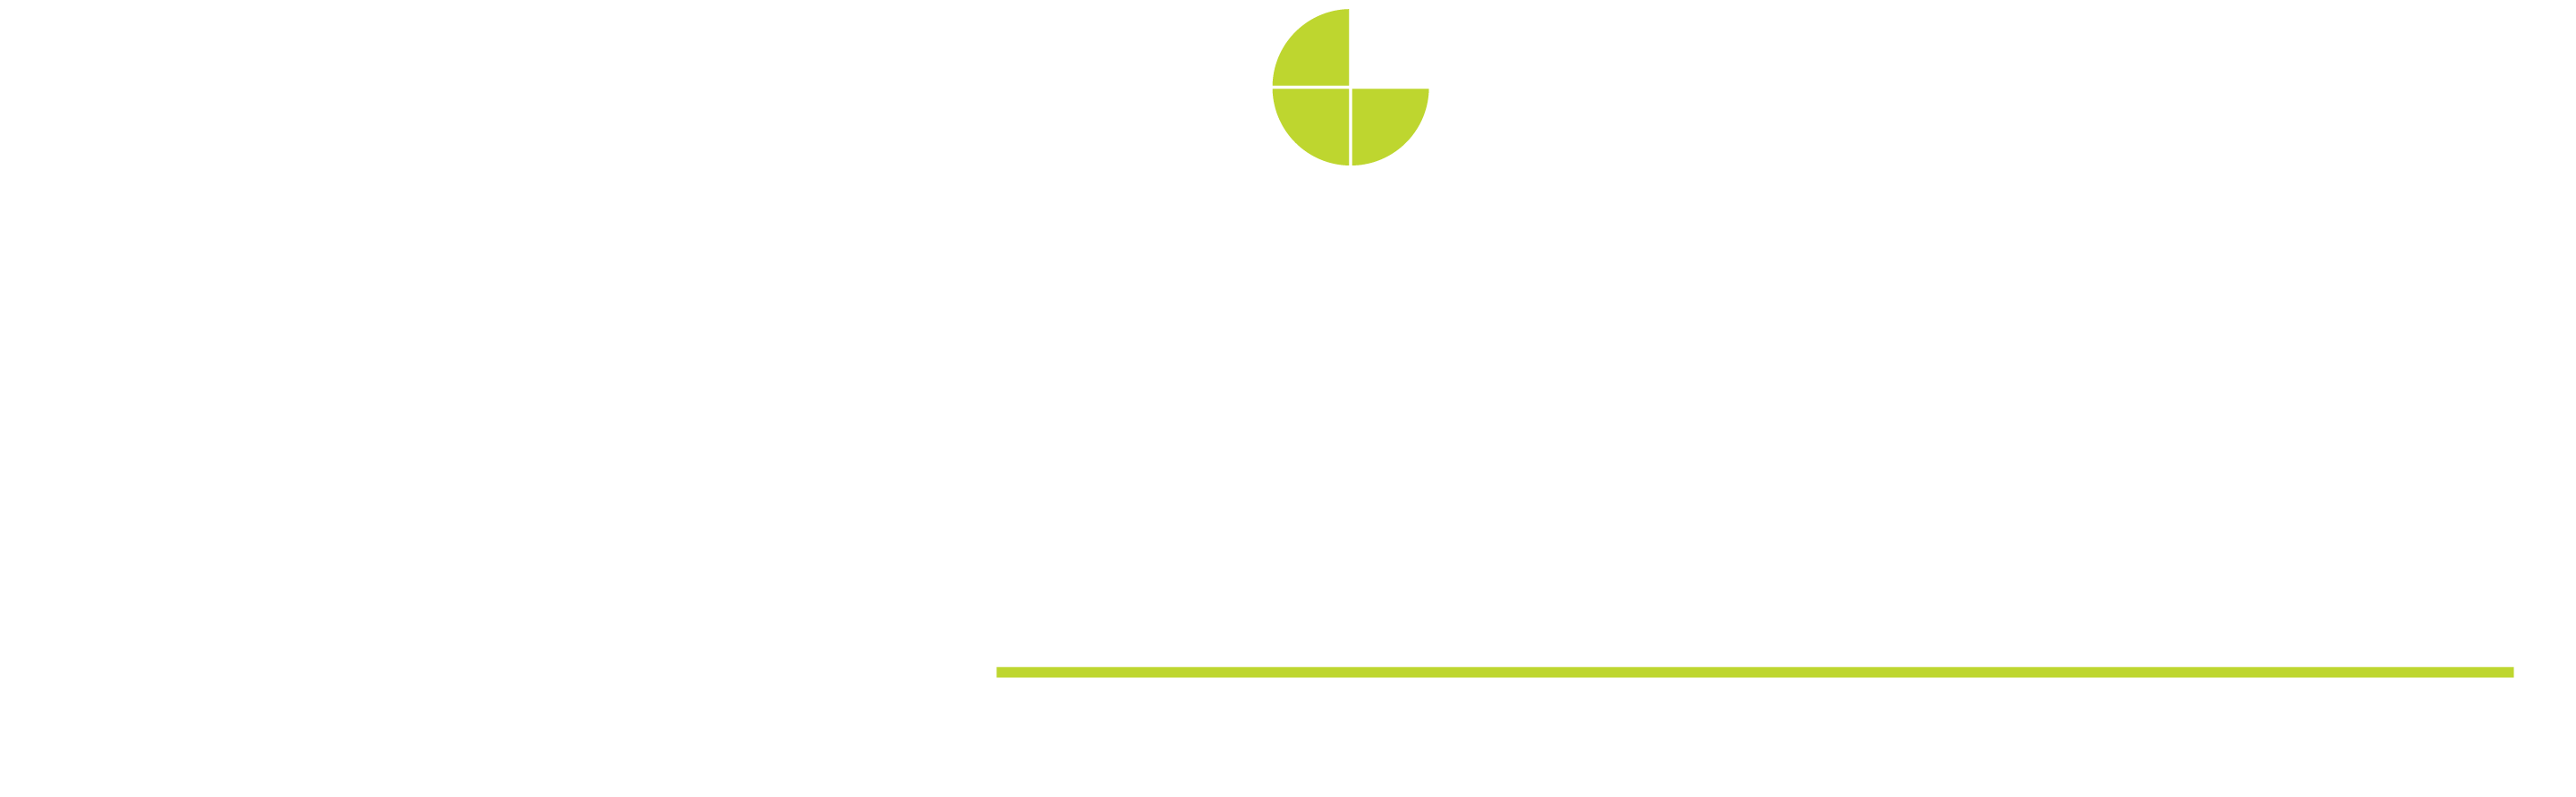 Depilex - Beauty Clinic & Institute